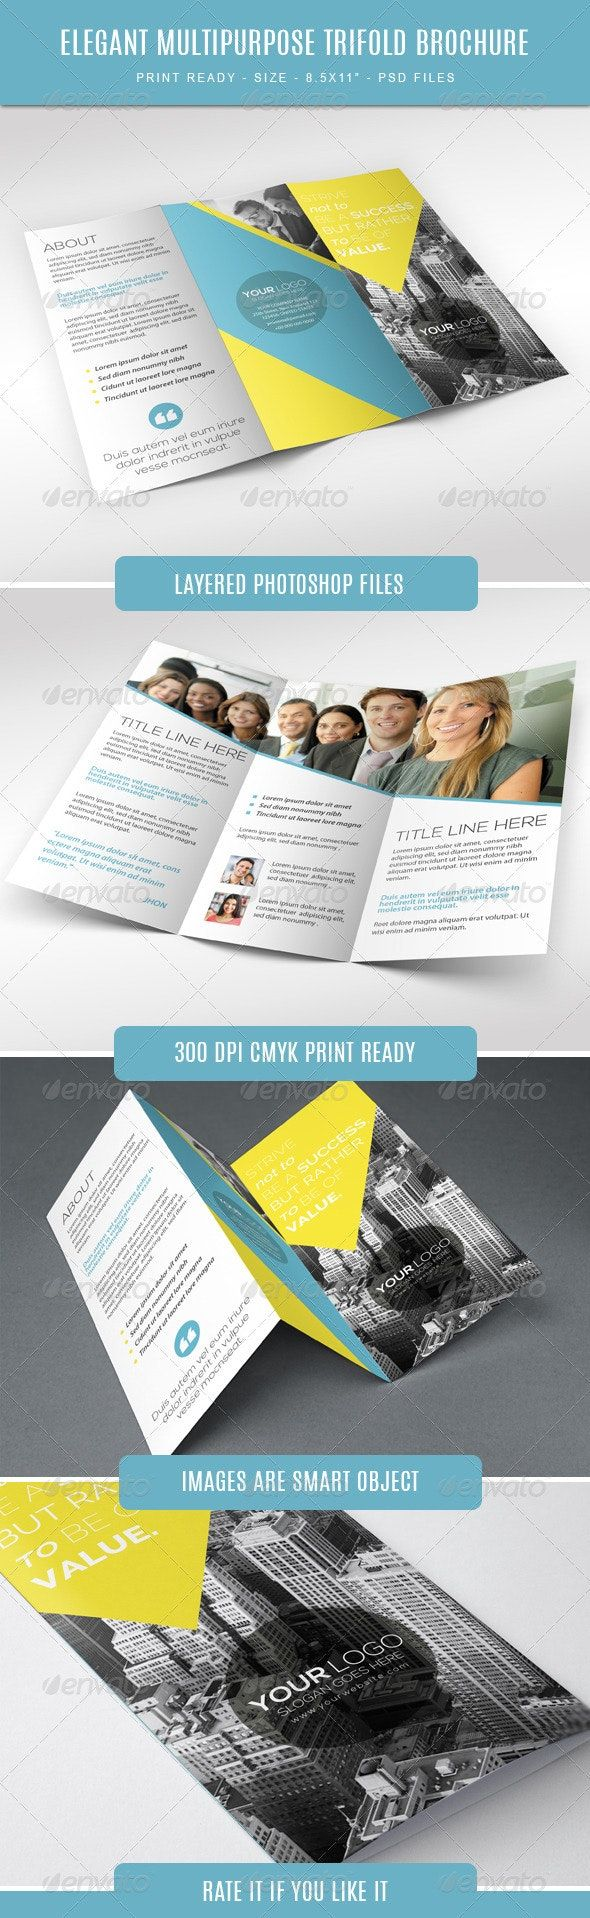 Elegant Multipurpose Trifold Brochure Corporate Brochure